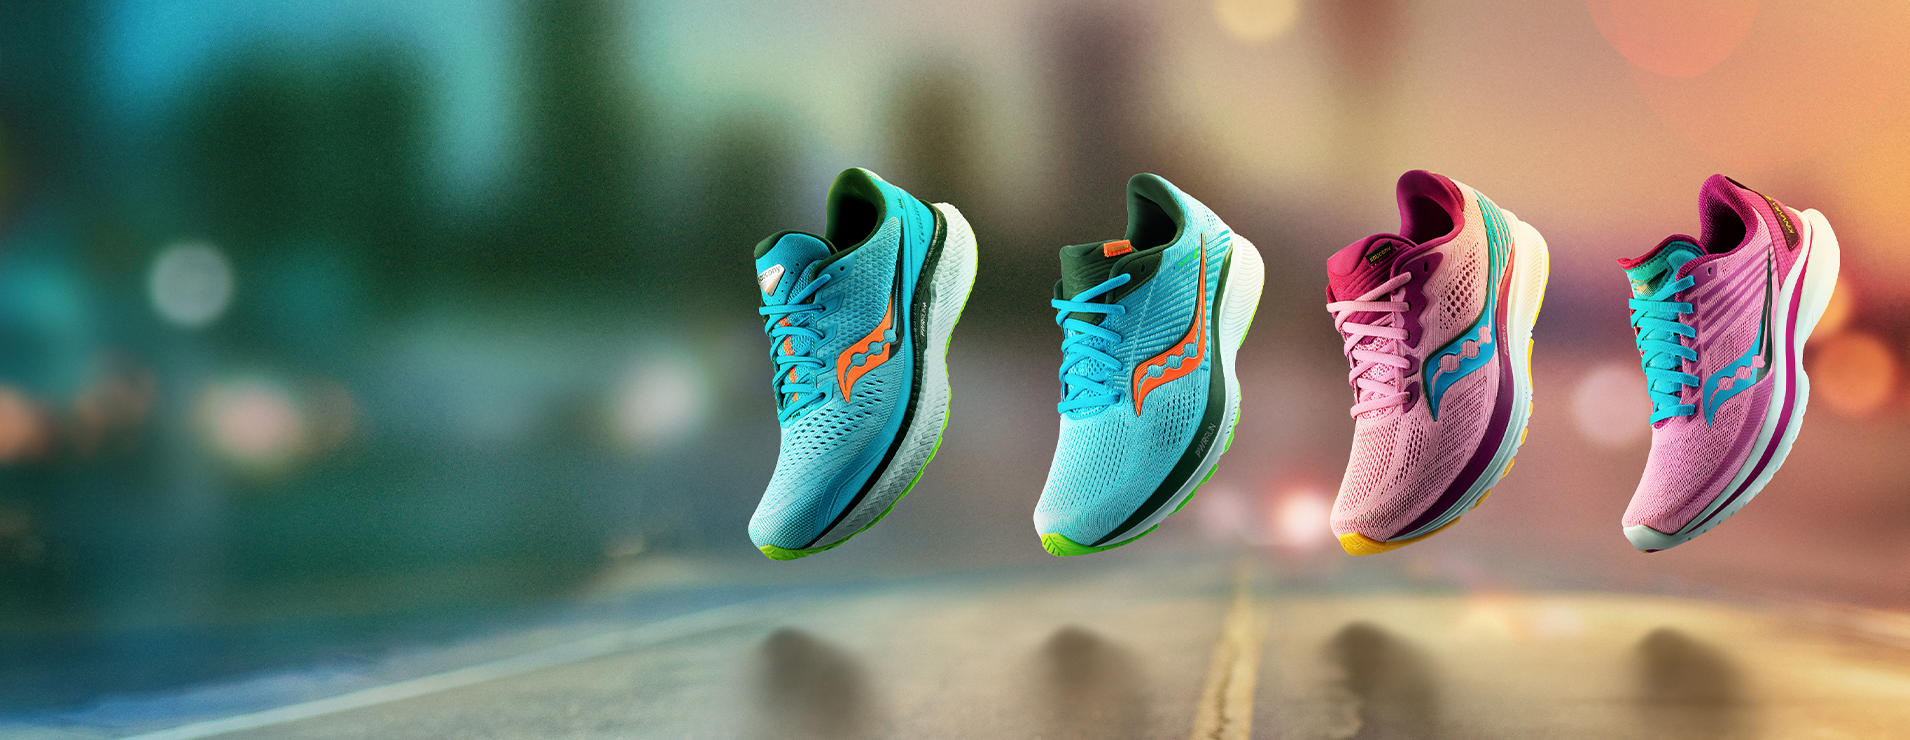 The Future Spring Pack in light blue and pink.